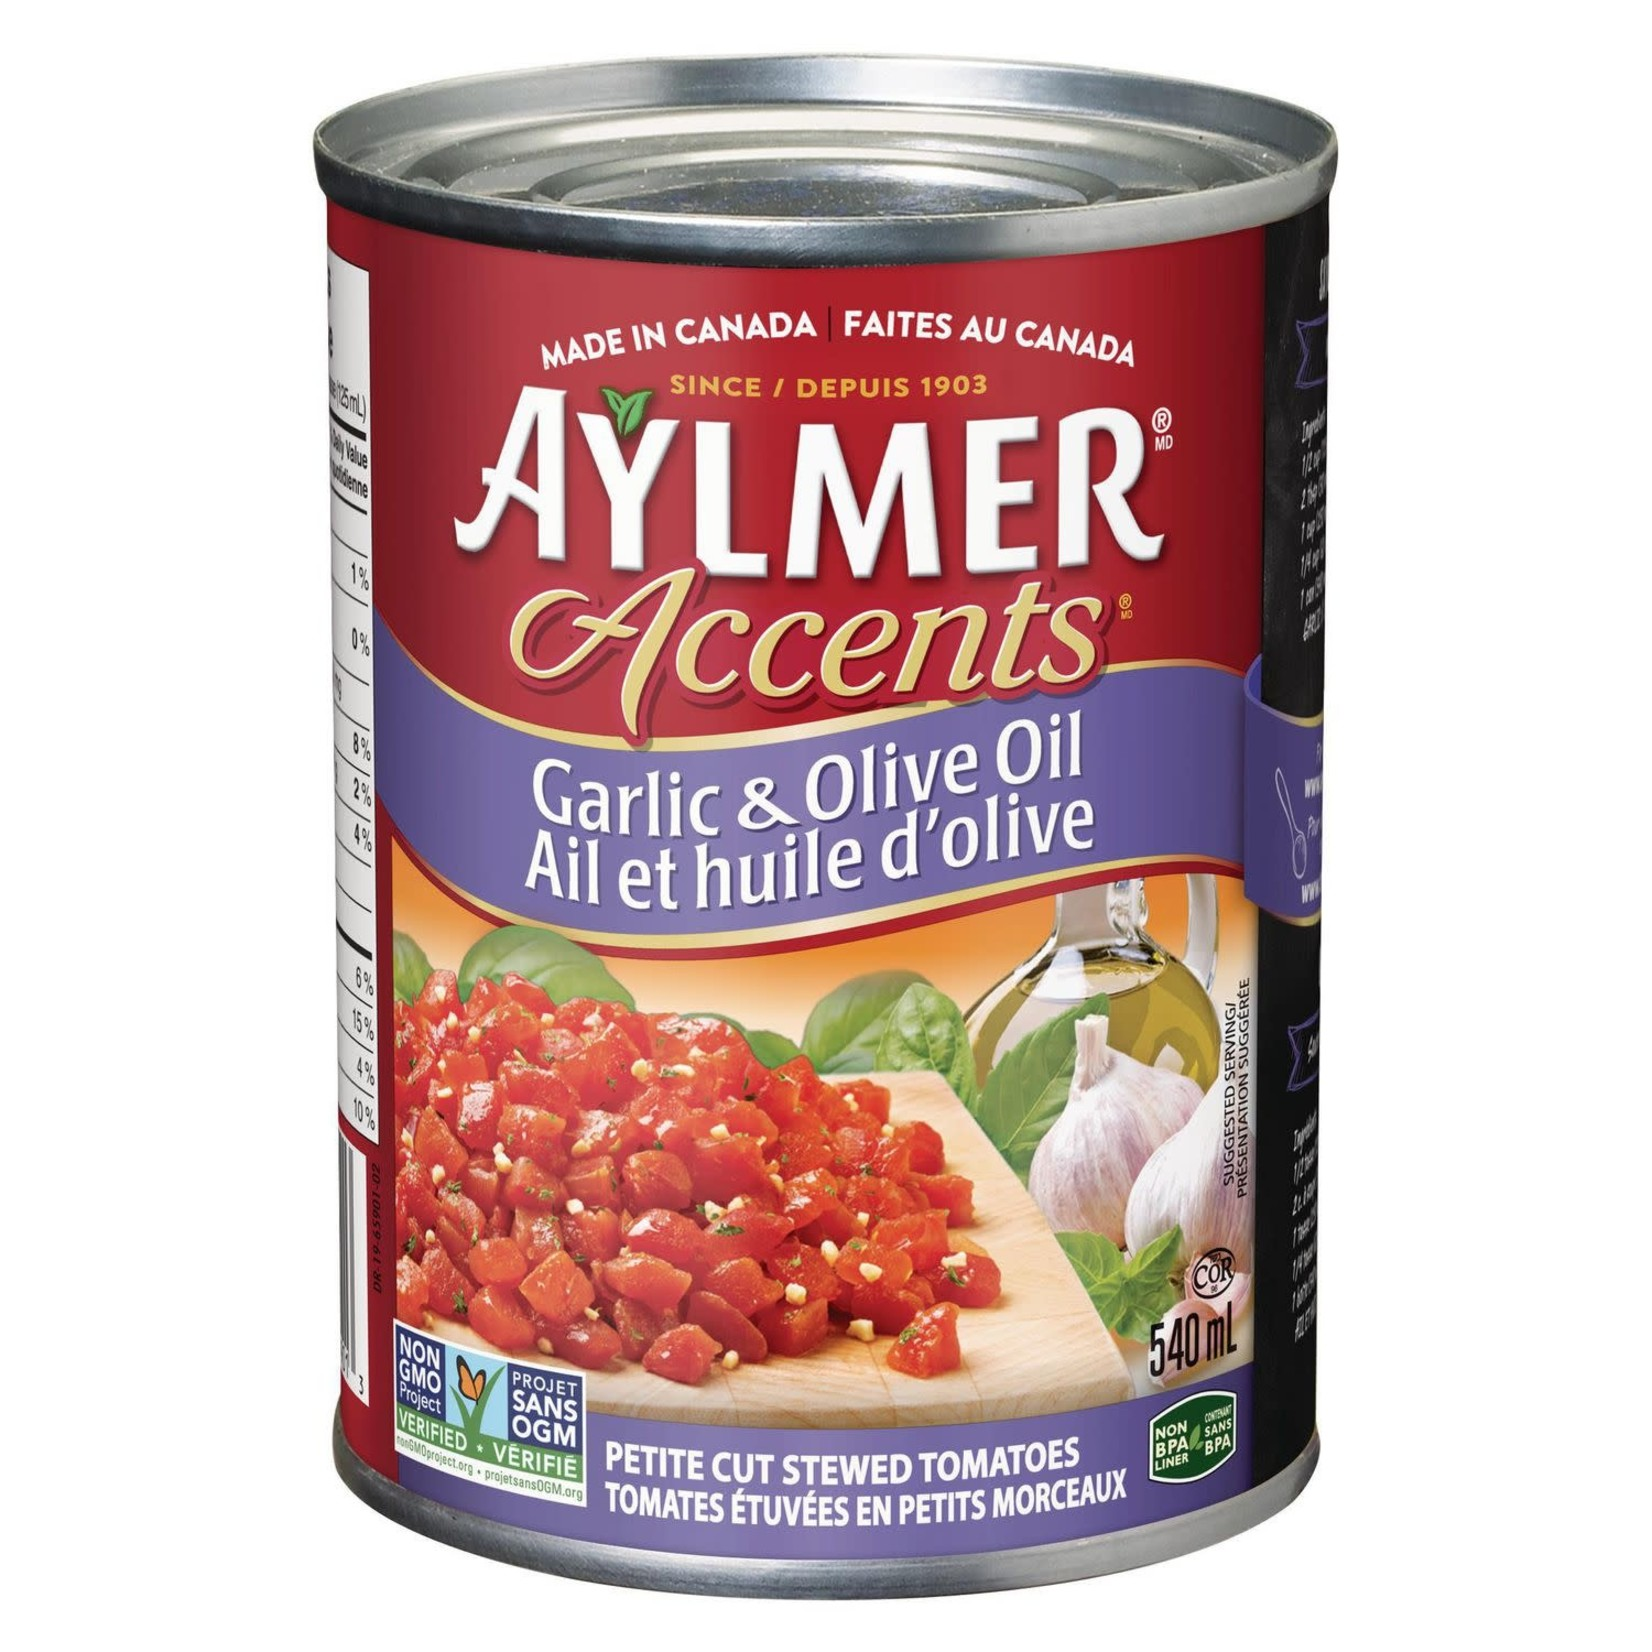 Aylmer Accents Tomatoes - Garlic & Olive Oil 540ml